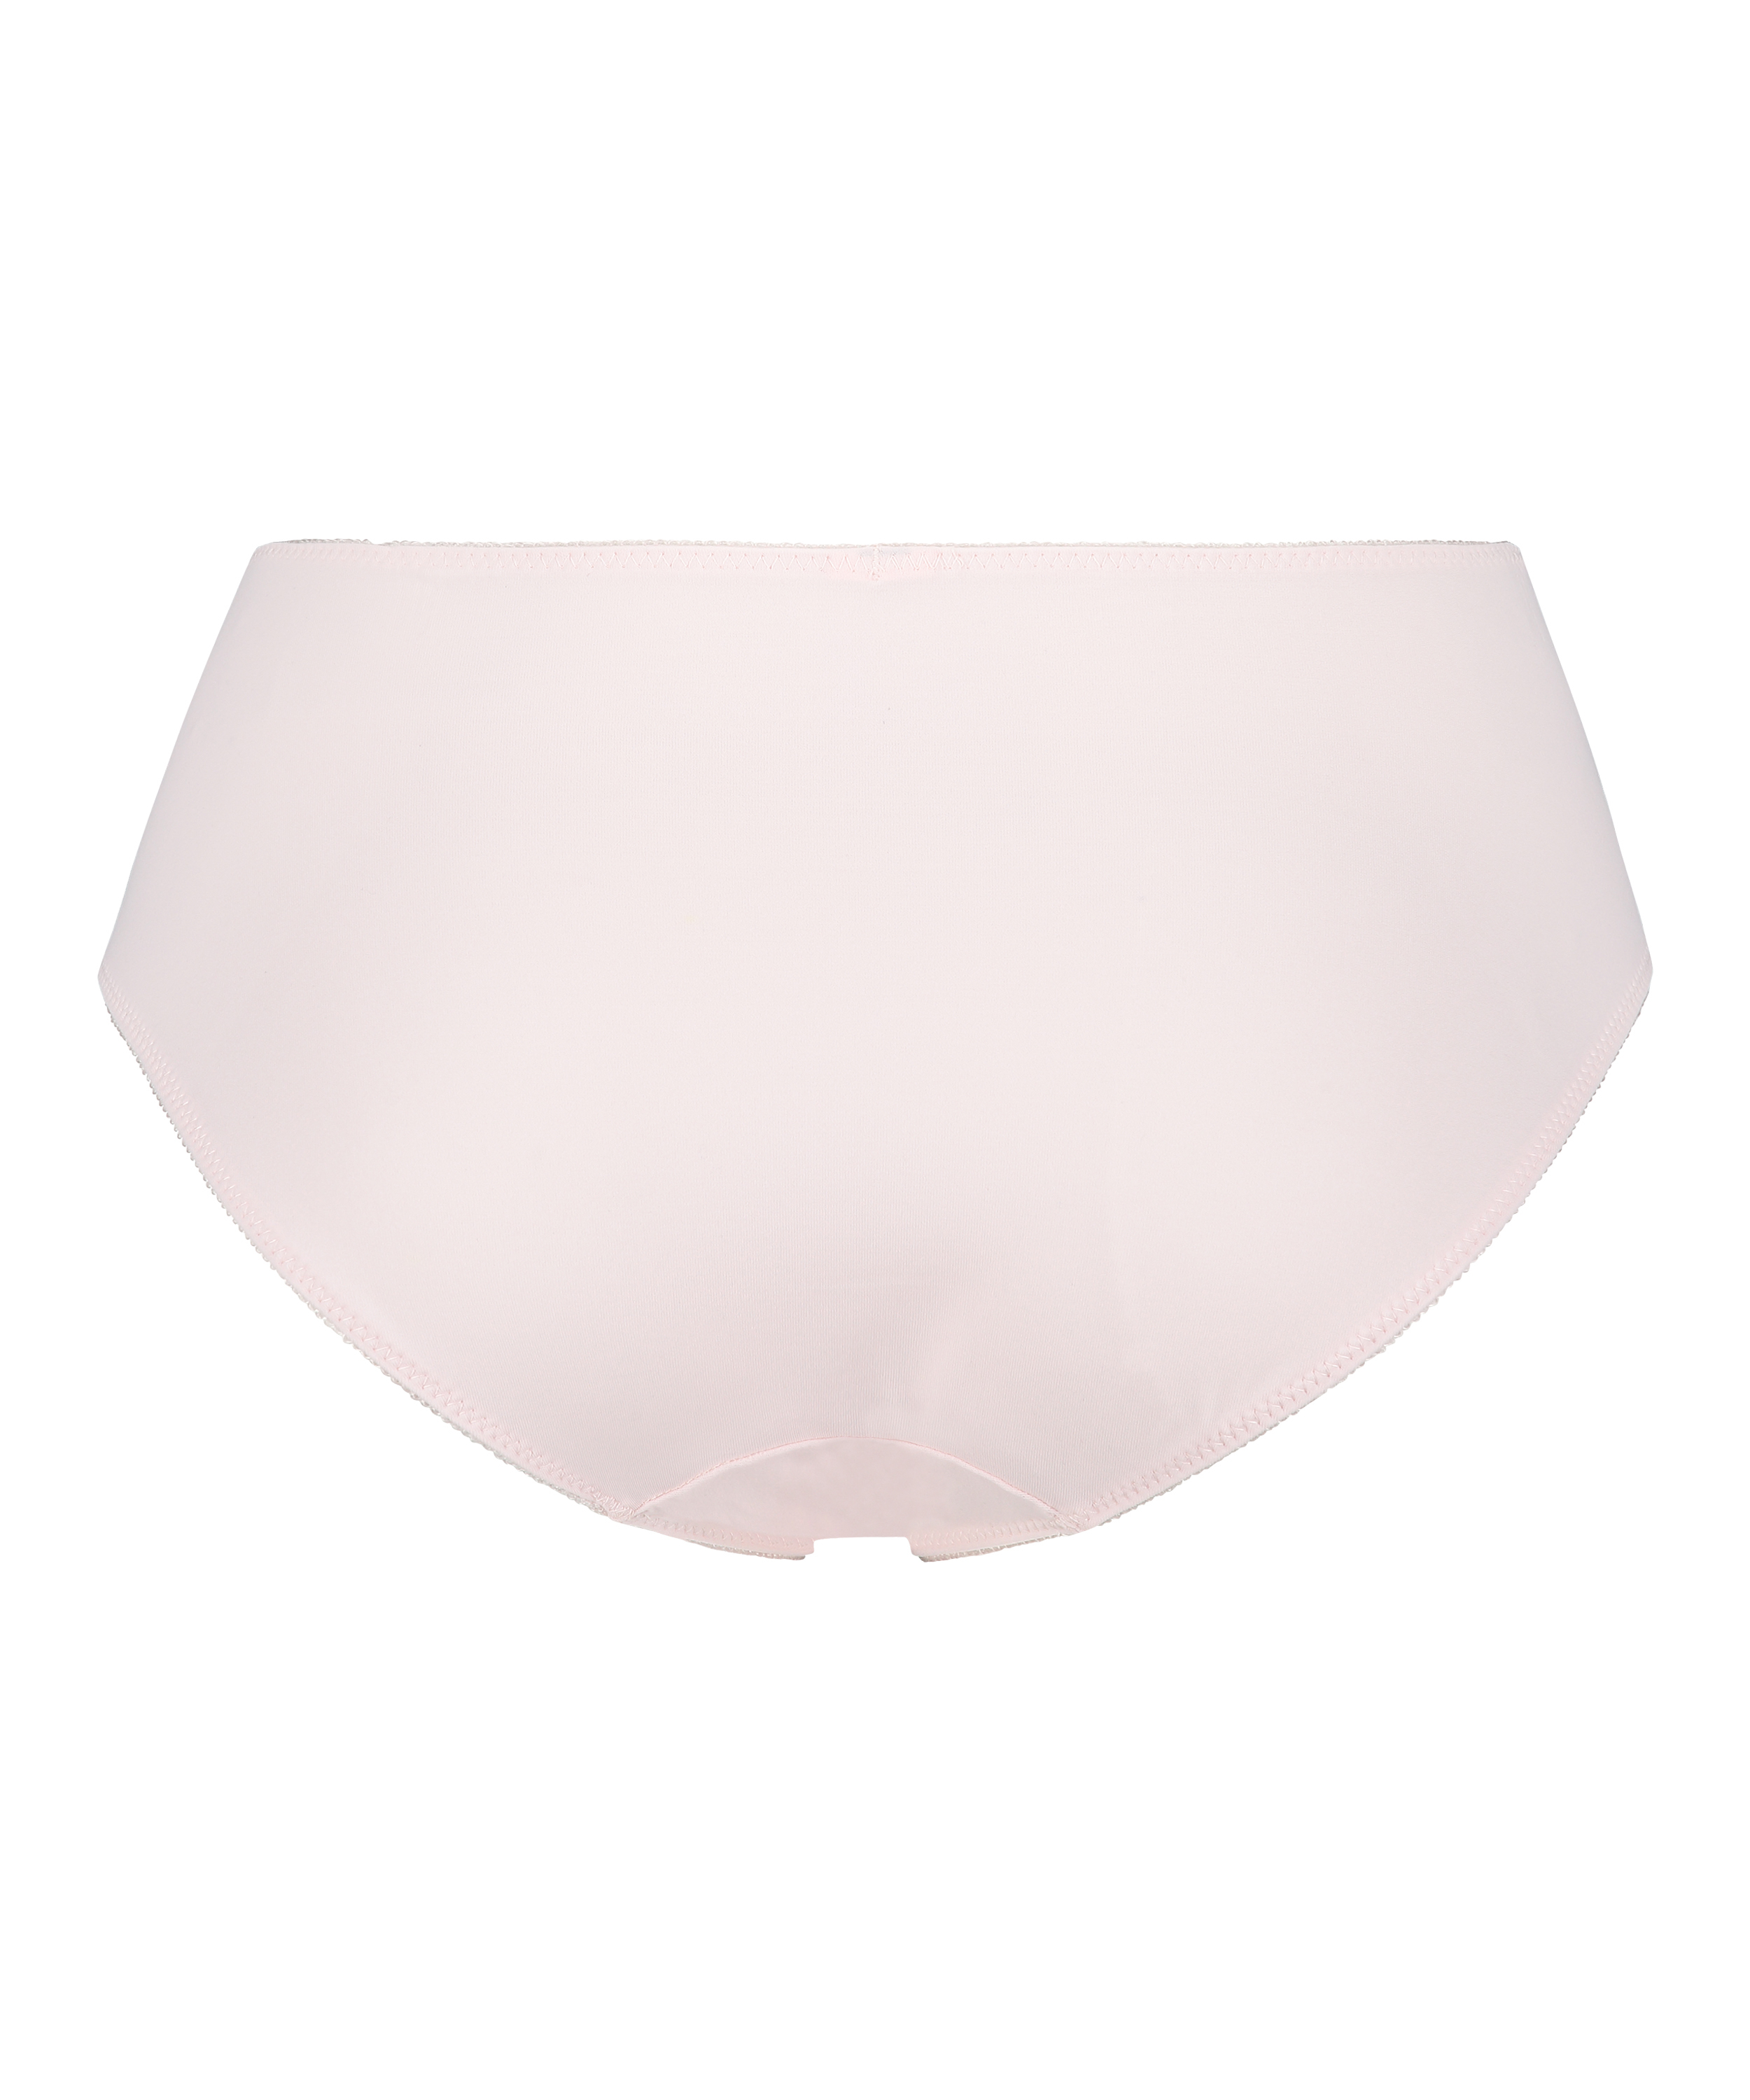 Diva high knickers, Pink, main